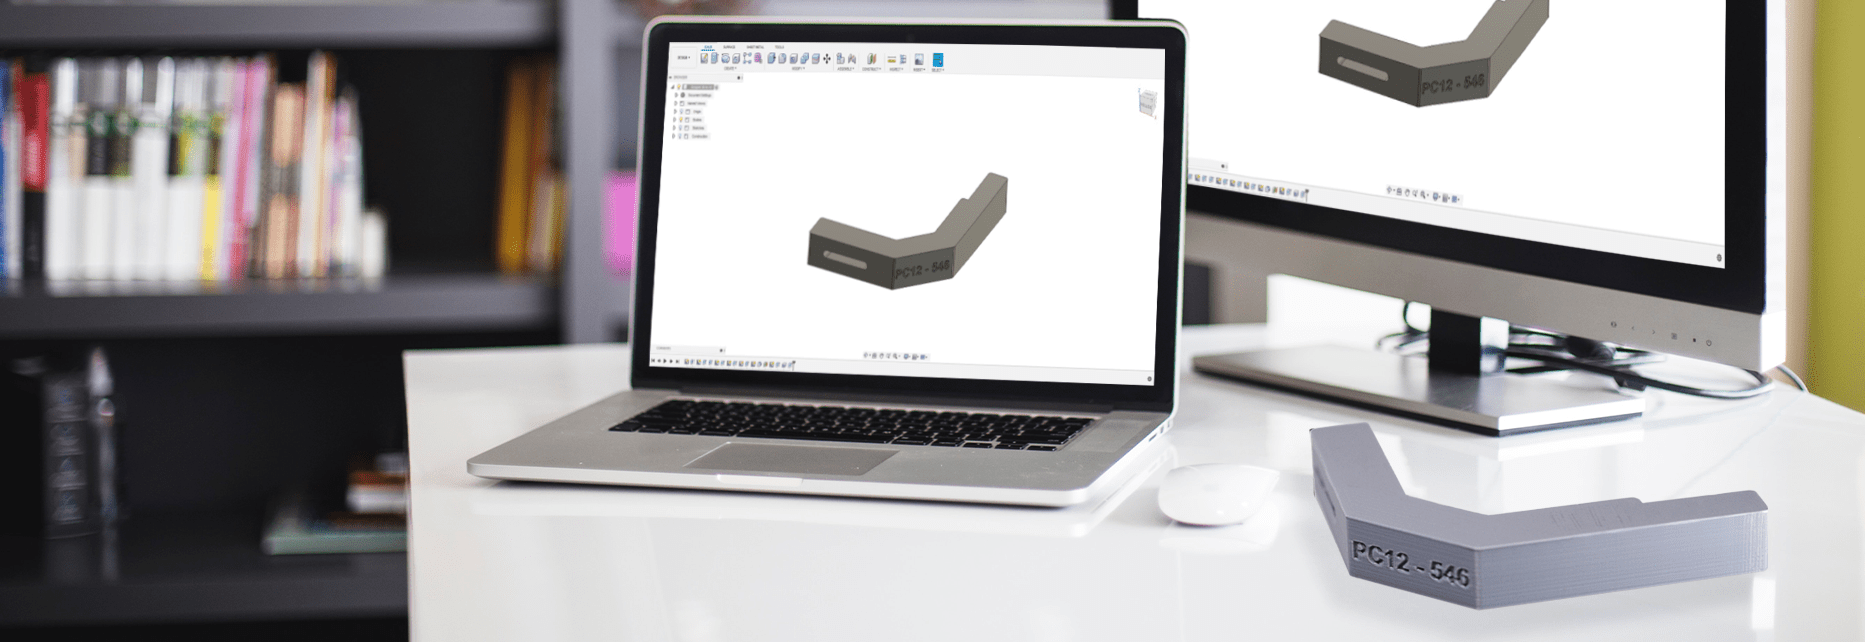 Workshop: Intro to CAD for 3D Printing using Fusion 360